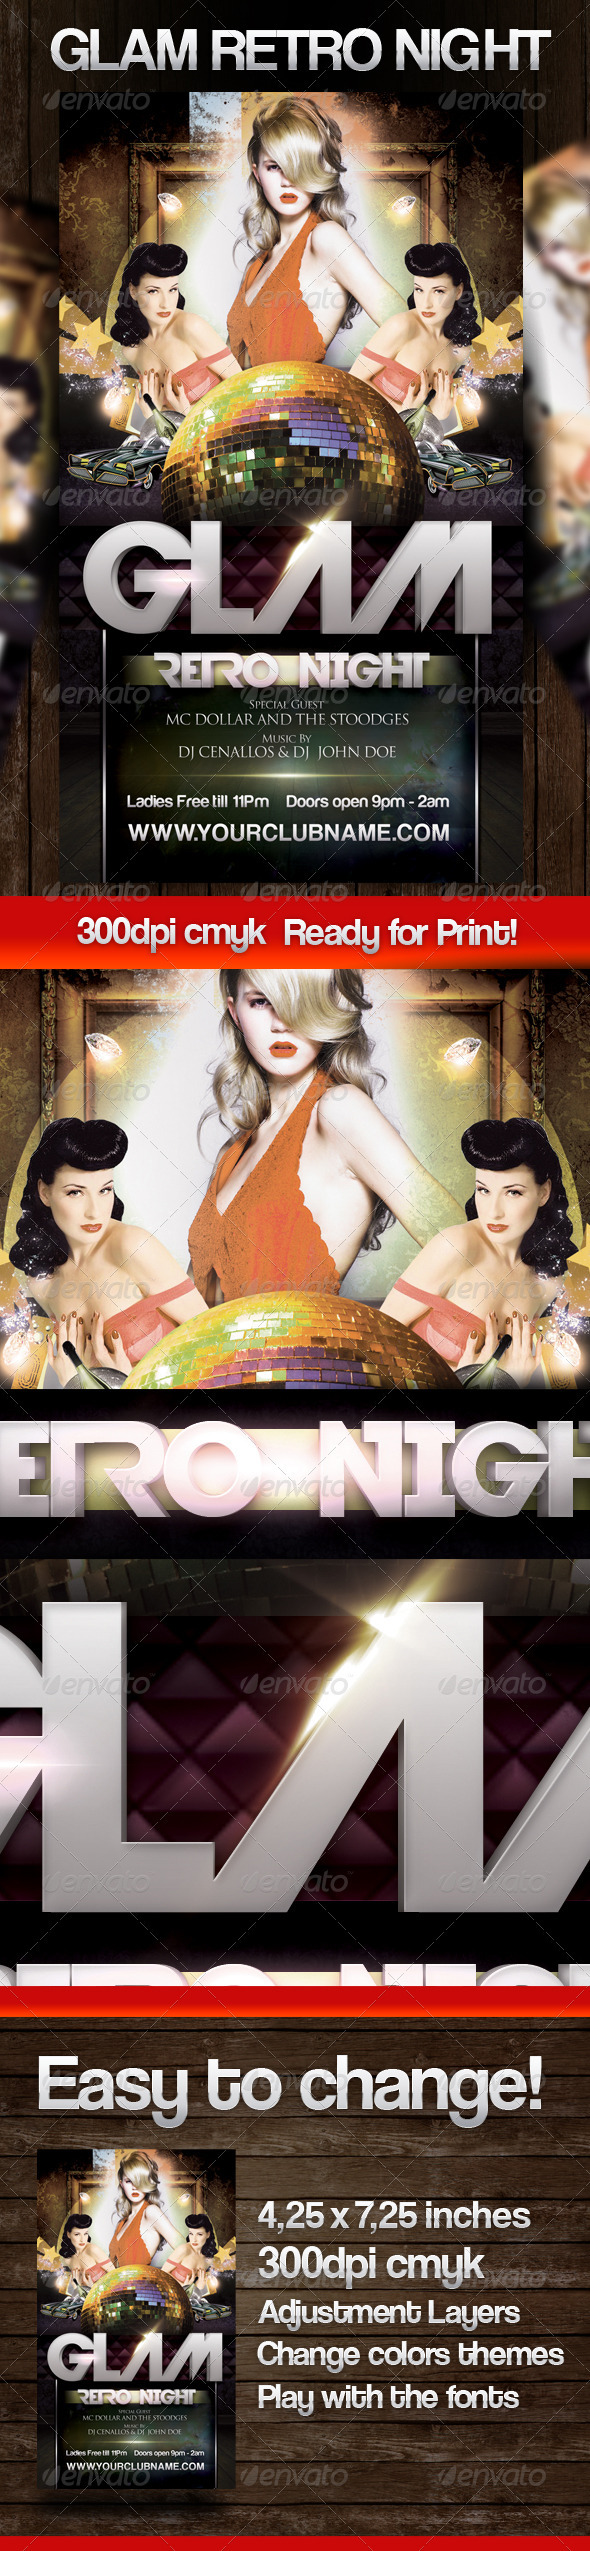 GLAM Retro Party Flyer - Clubs & Parties Events